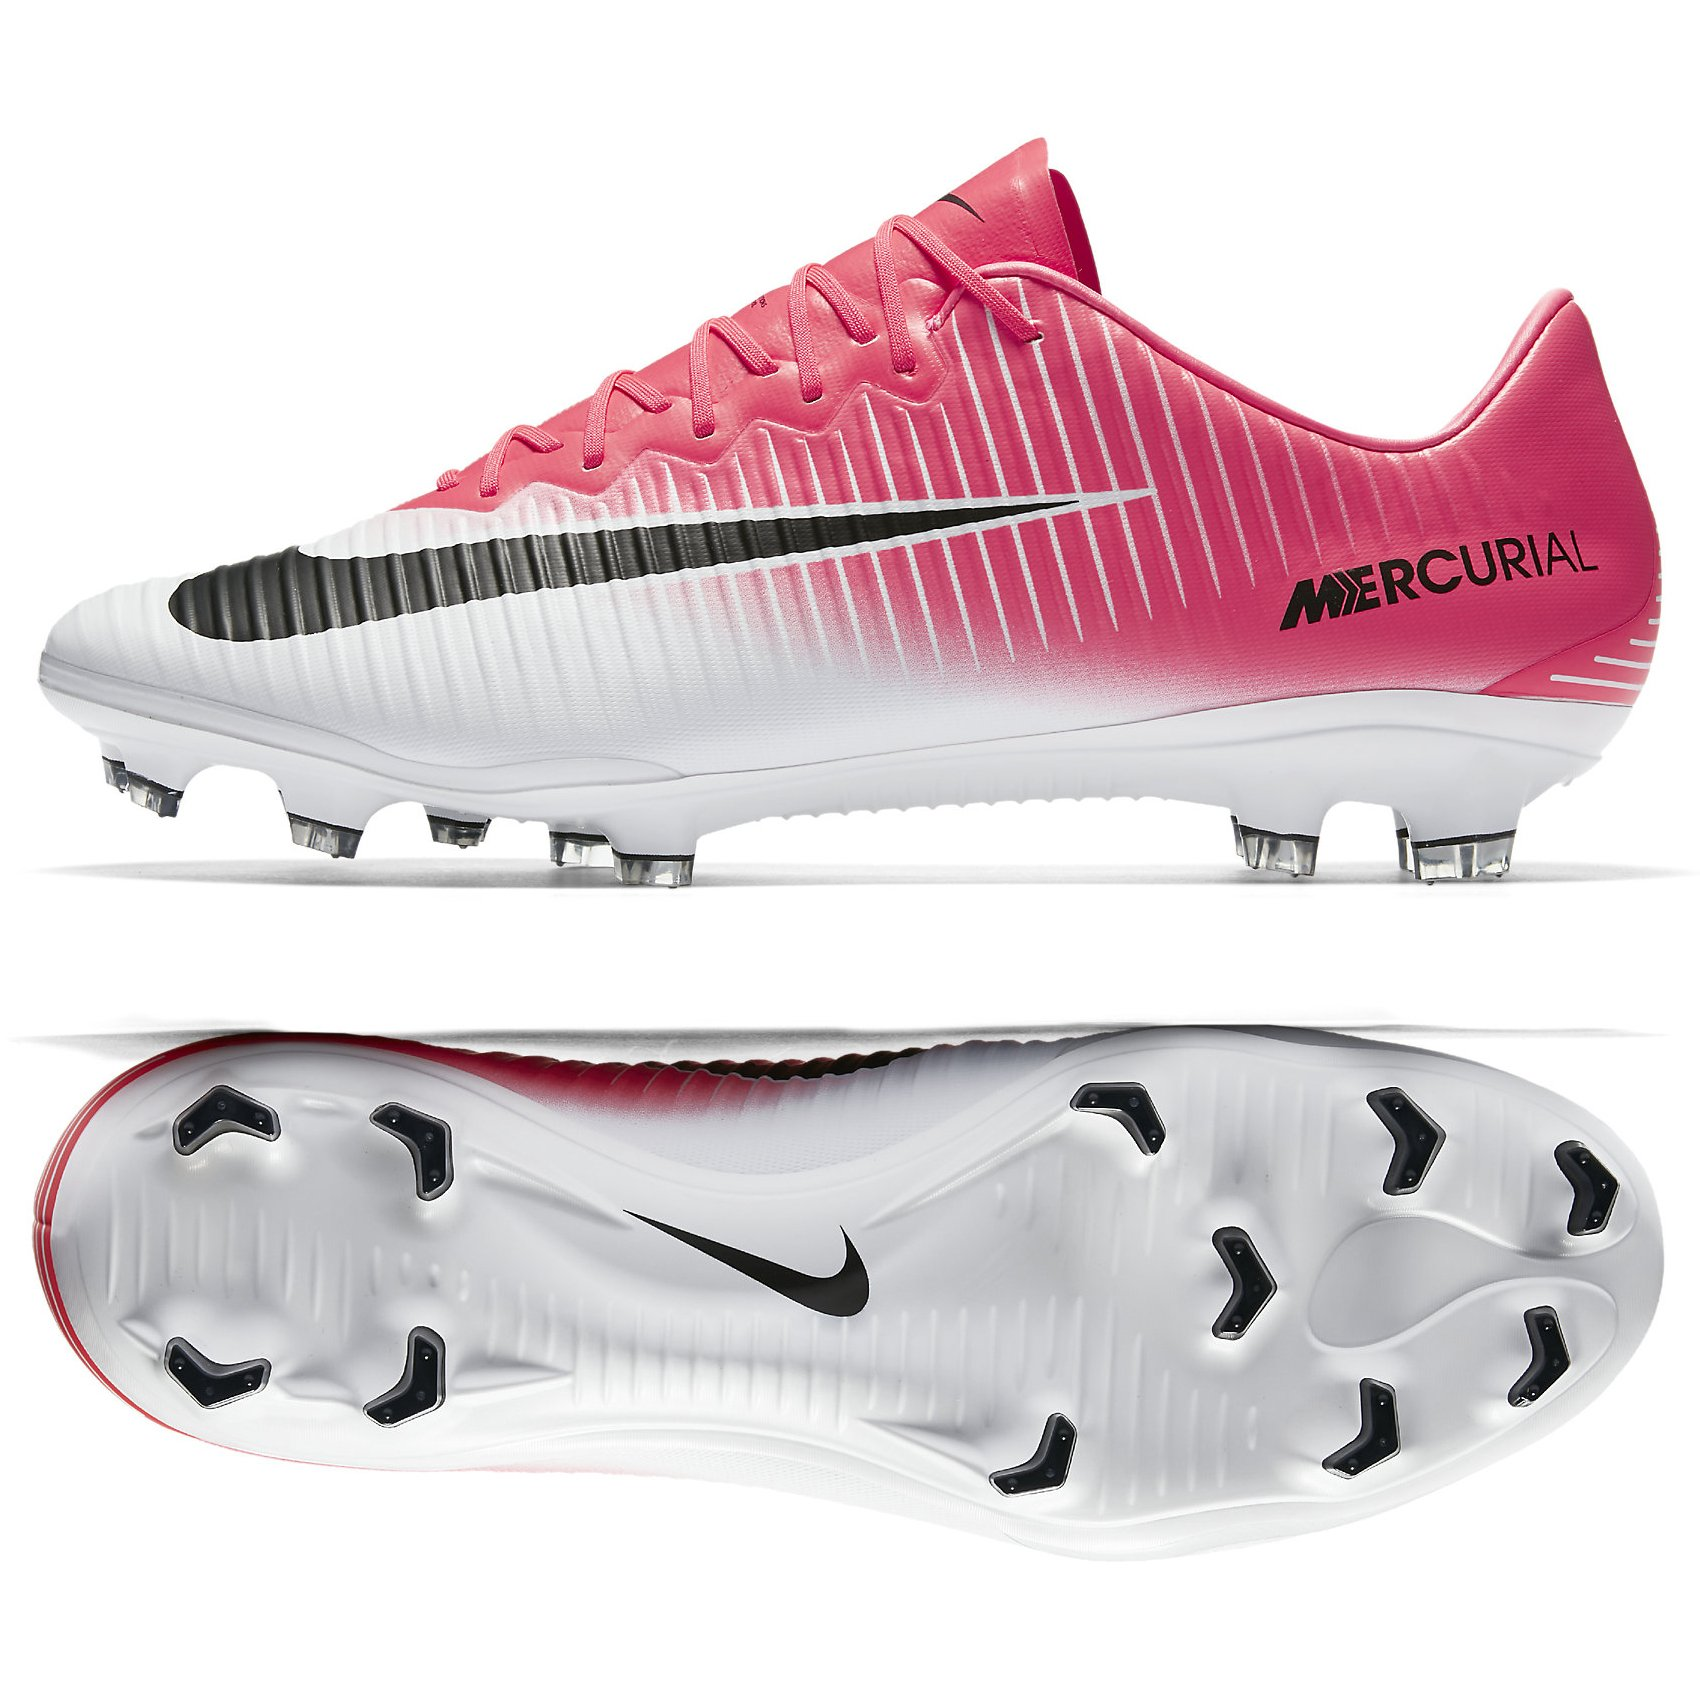 35a350b46928 Galleon - Nike Mercurial Vapor XI FG Cleats [Racer Pink] (8.5)